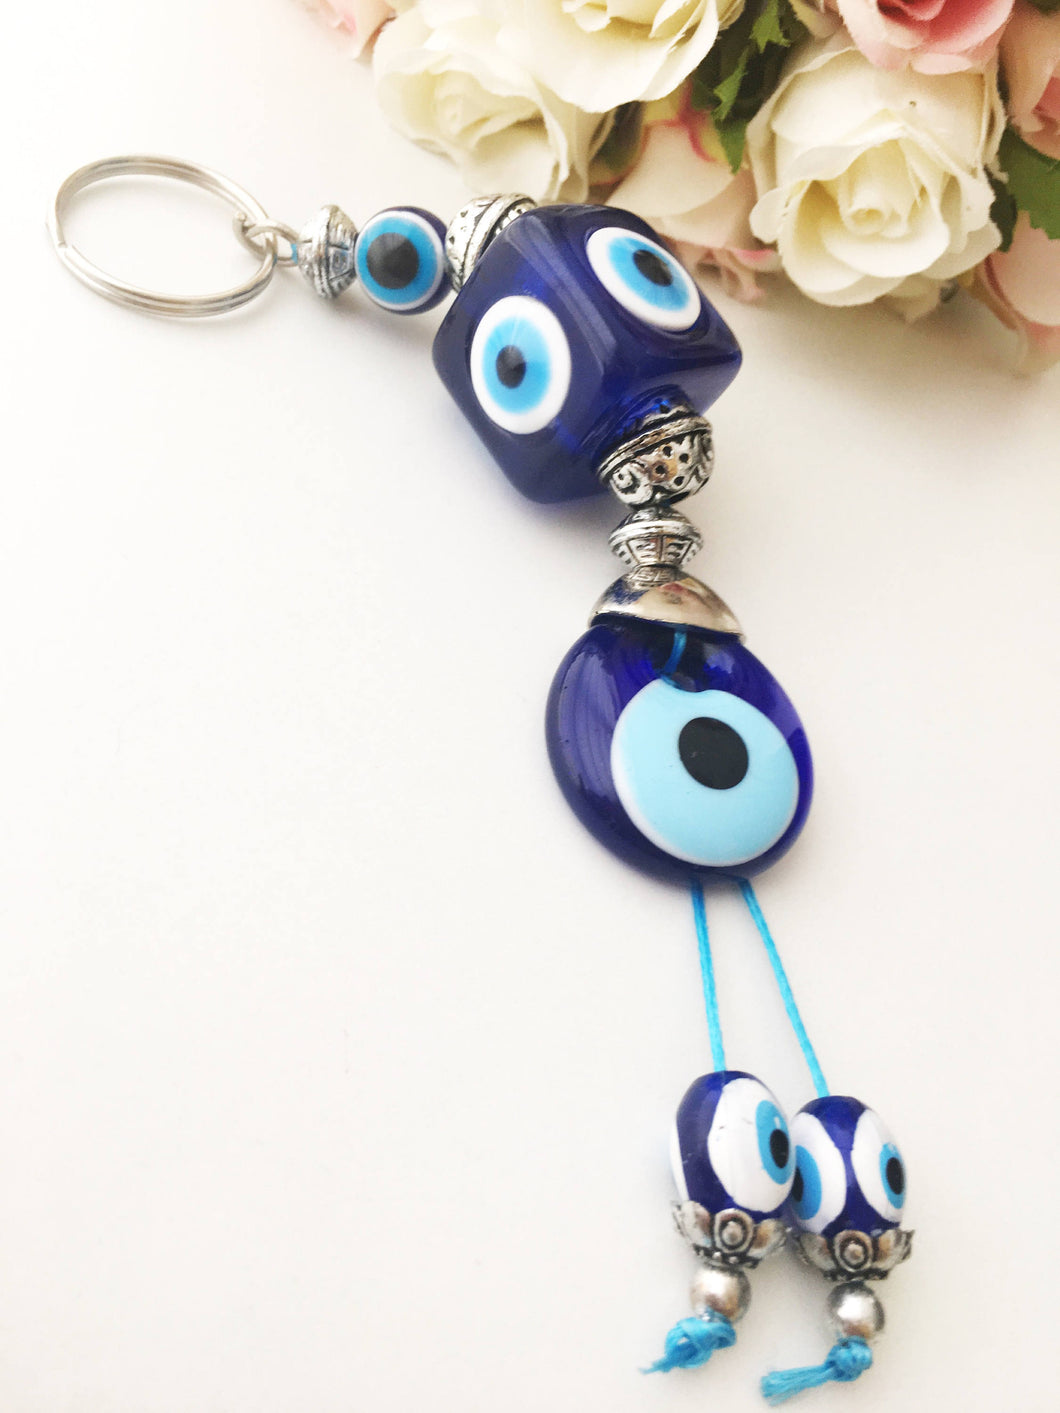 Evil eye key chain, square evil eye beads, evil eye key ring, evil eye bag charm - Evileyefavor